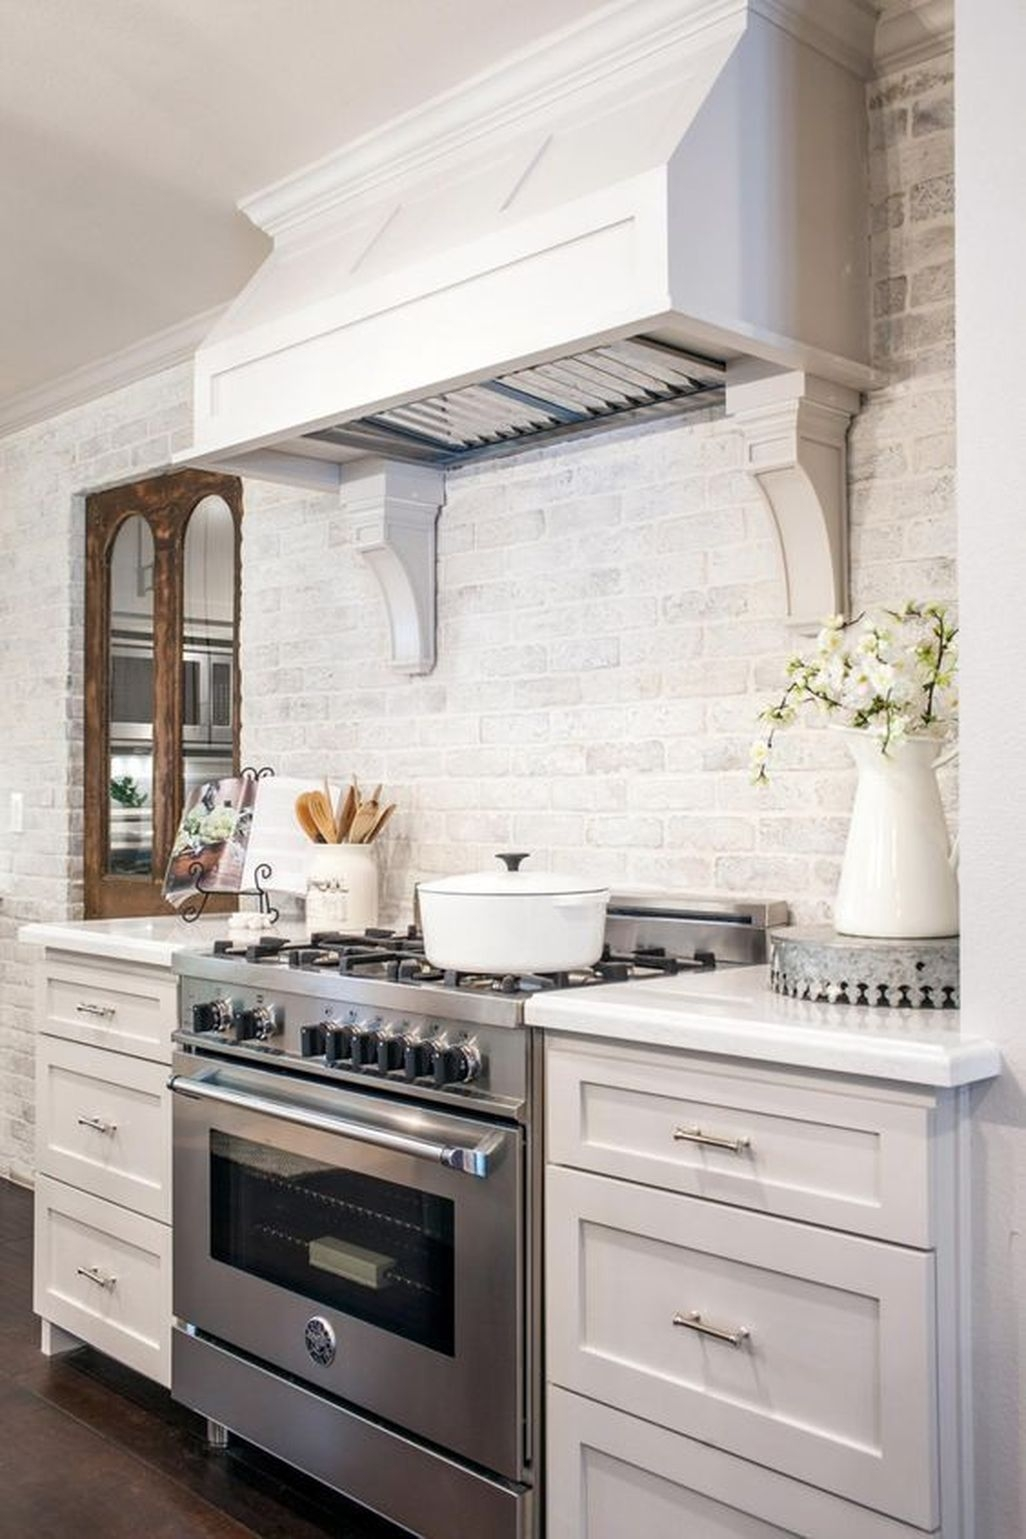 Awesome White Kitchen Backsplash Design Ideas 01